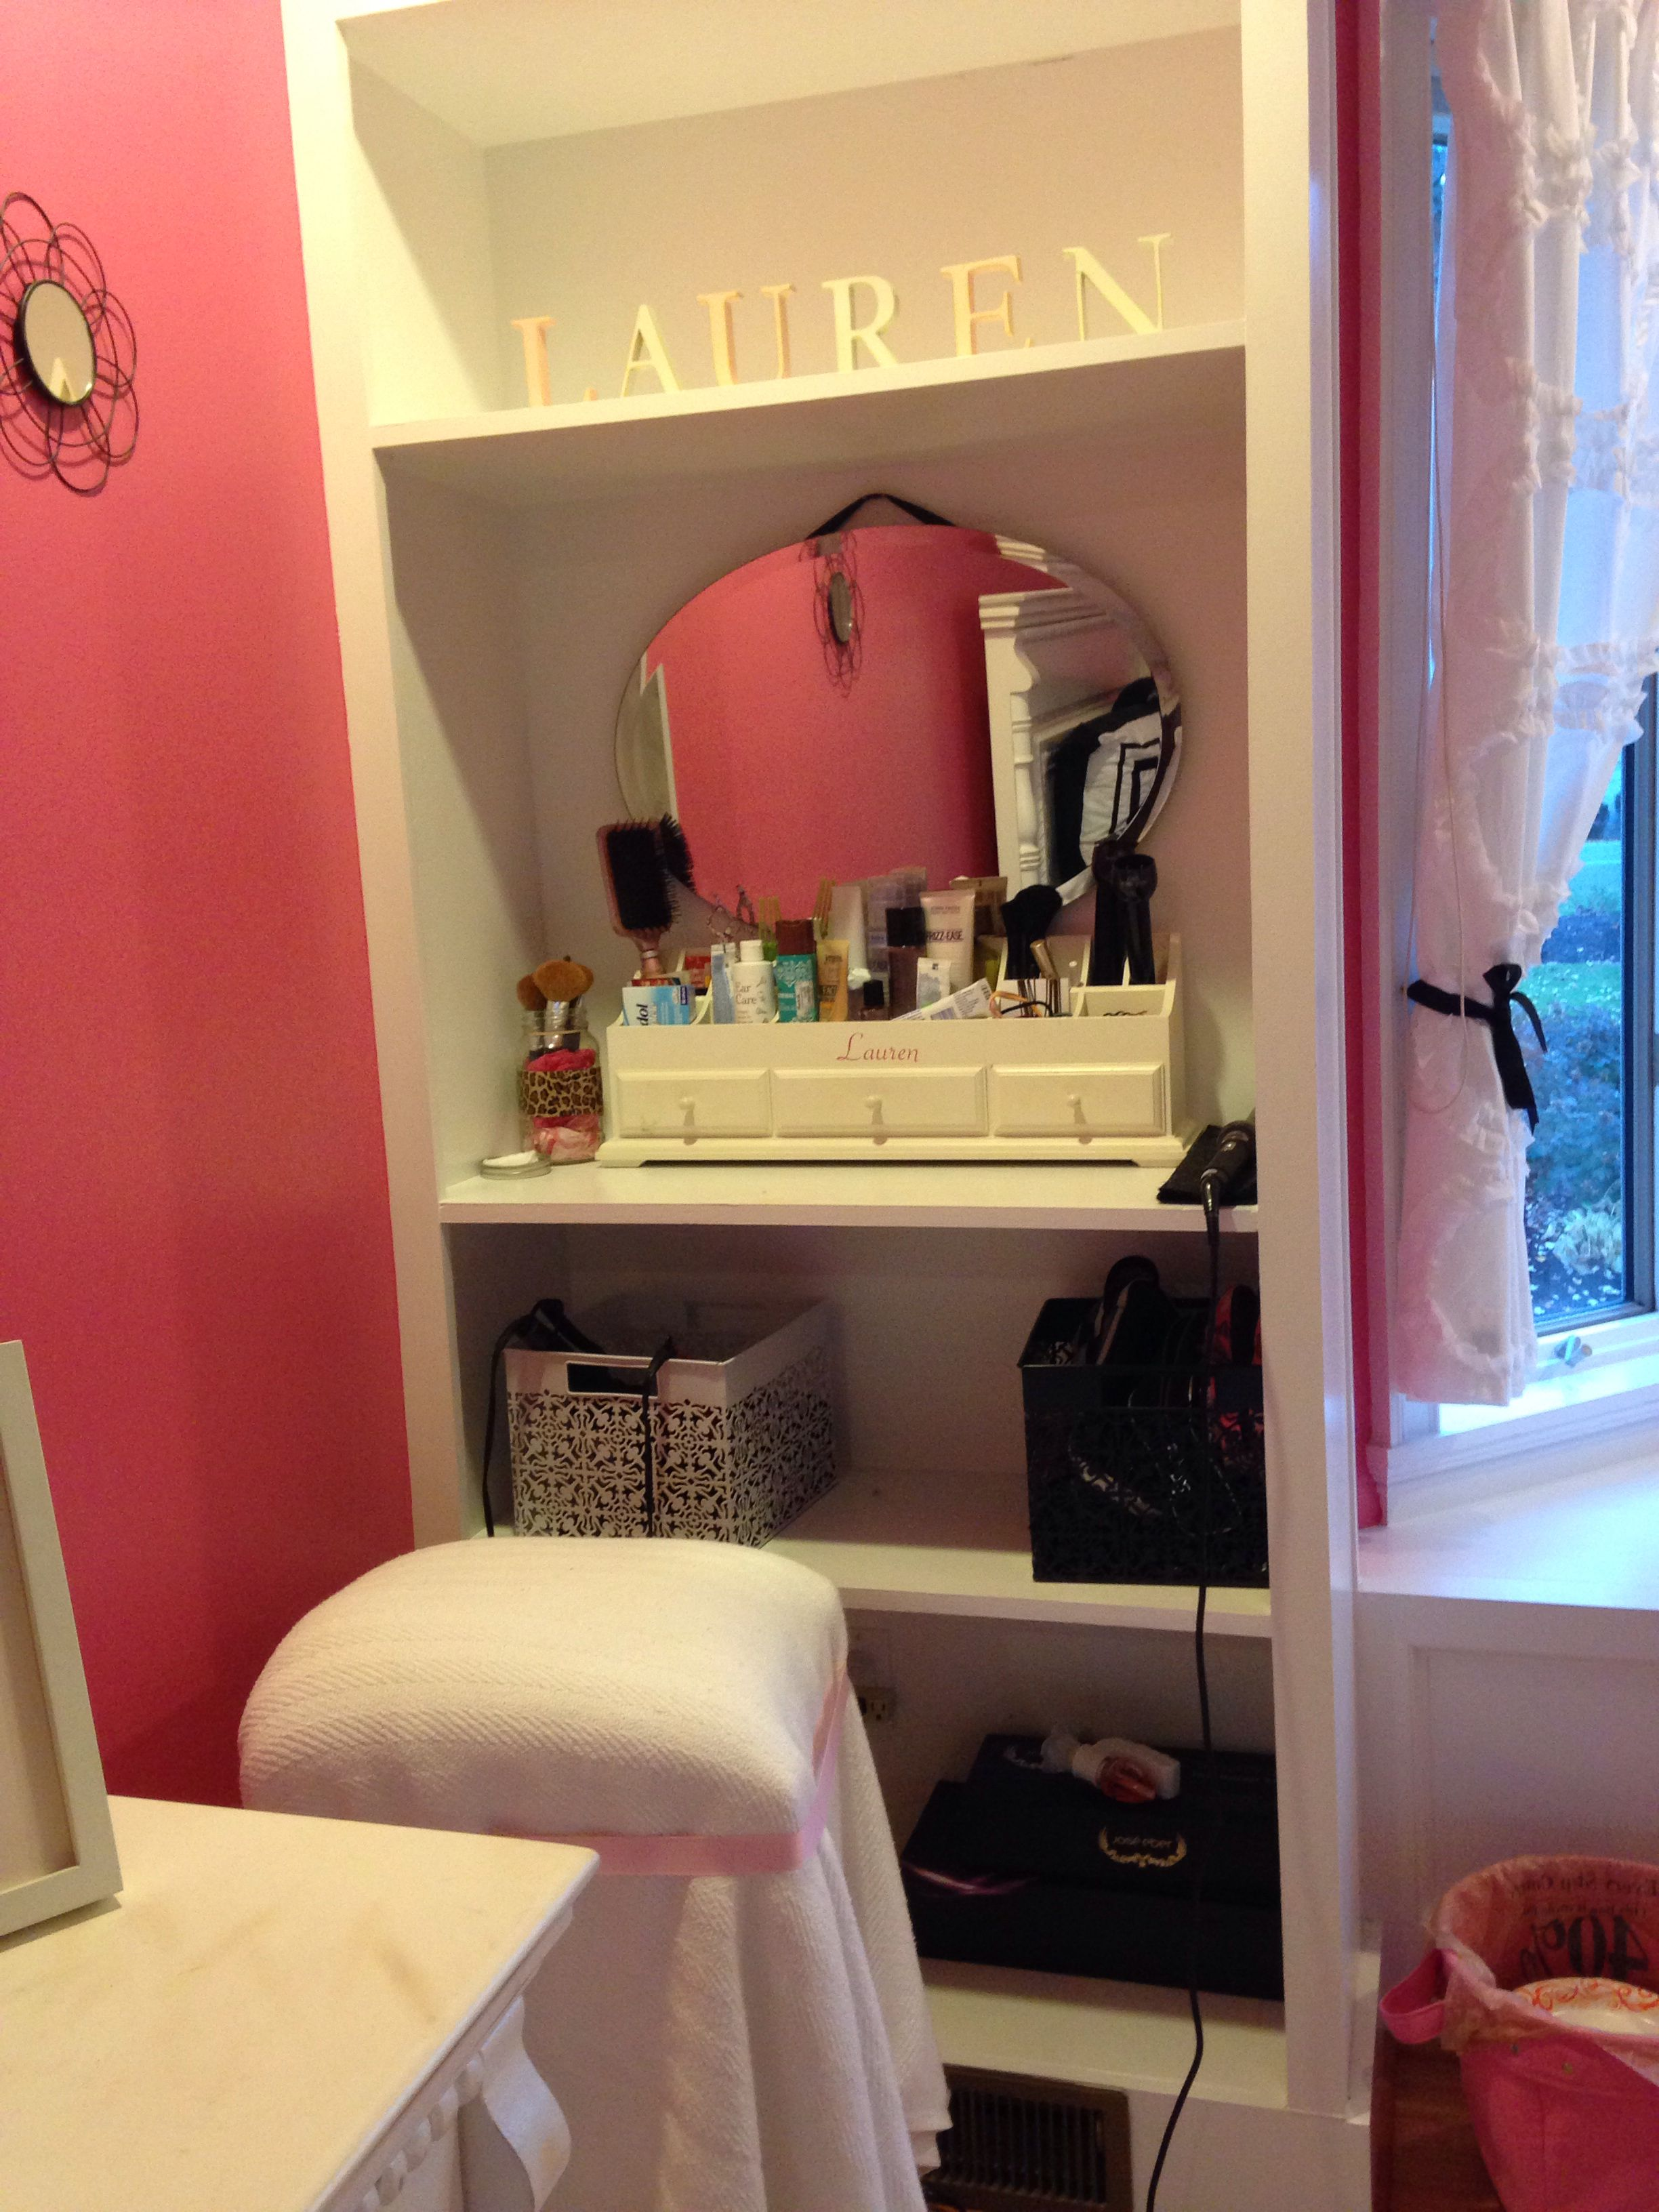 Diy Vanity Built In Bookshelf, Hanging Mirror, Ribbon, Organizer, Hammer,